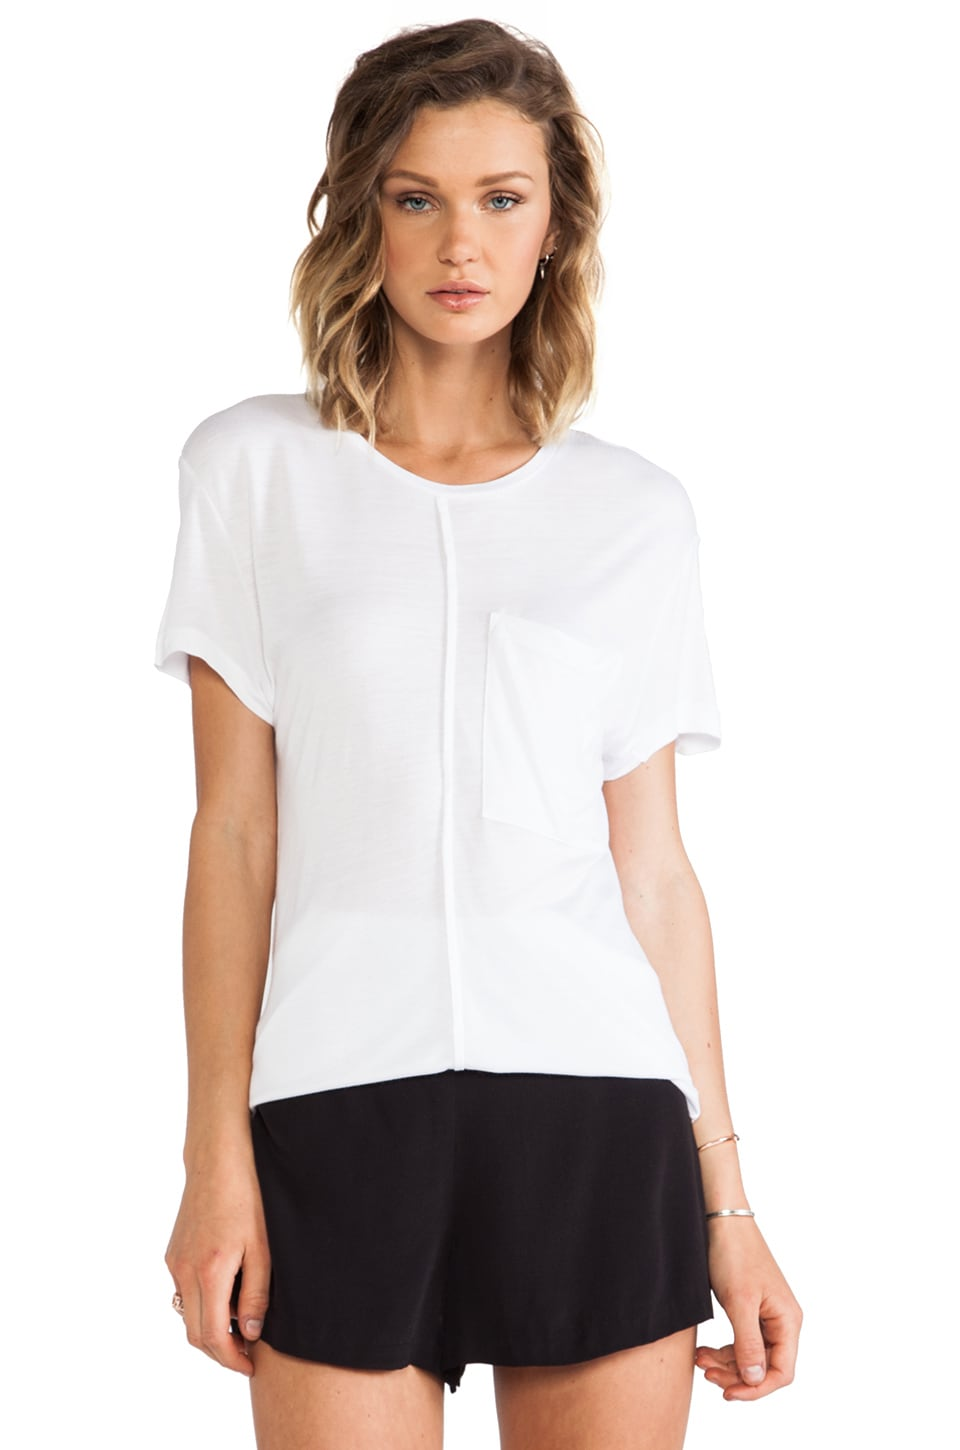 DEREK LAM 10 CROSBY Seam Tee in White